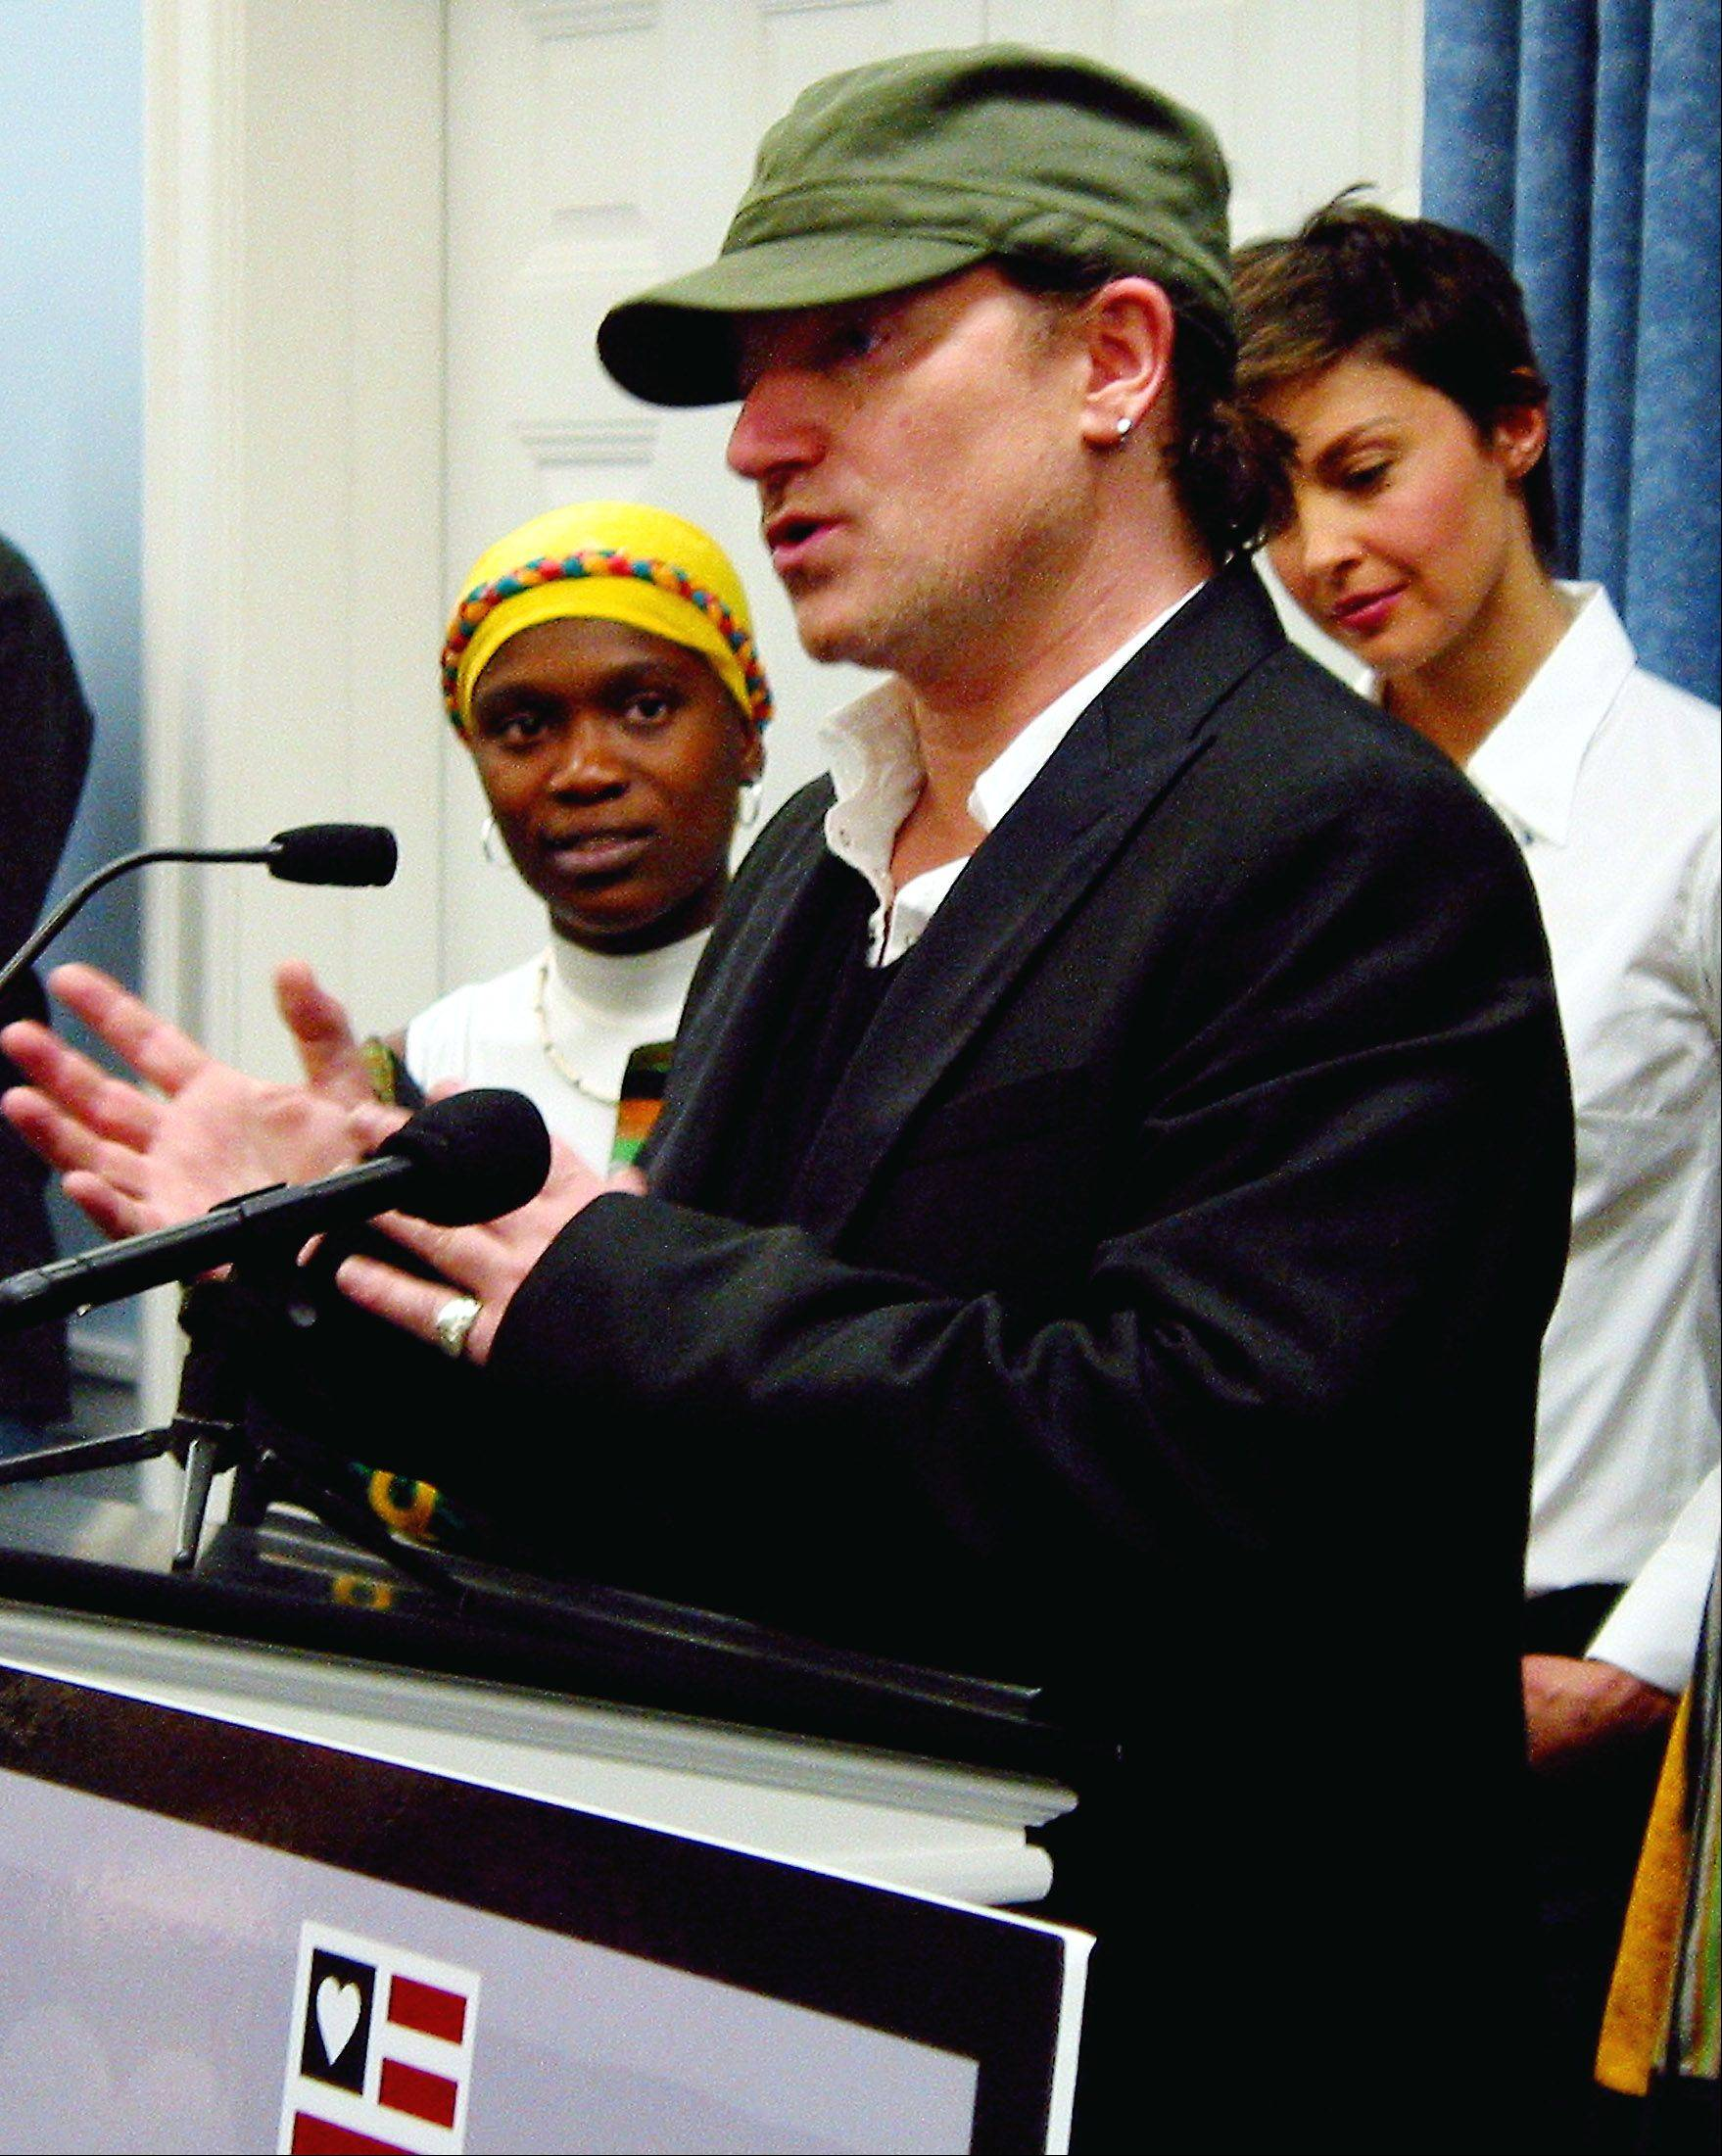 Bono, center, visits Wheaton College to discuss Africa's struggle with AIDS in 2002. Ashley Judd, on his right.